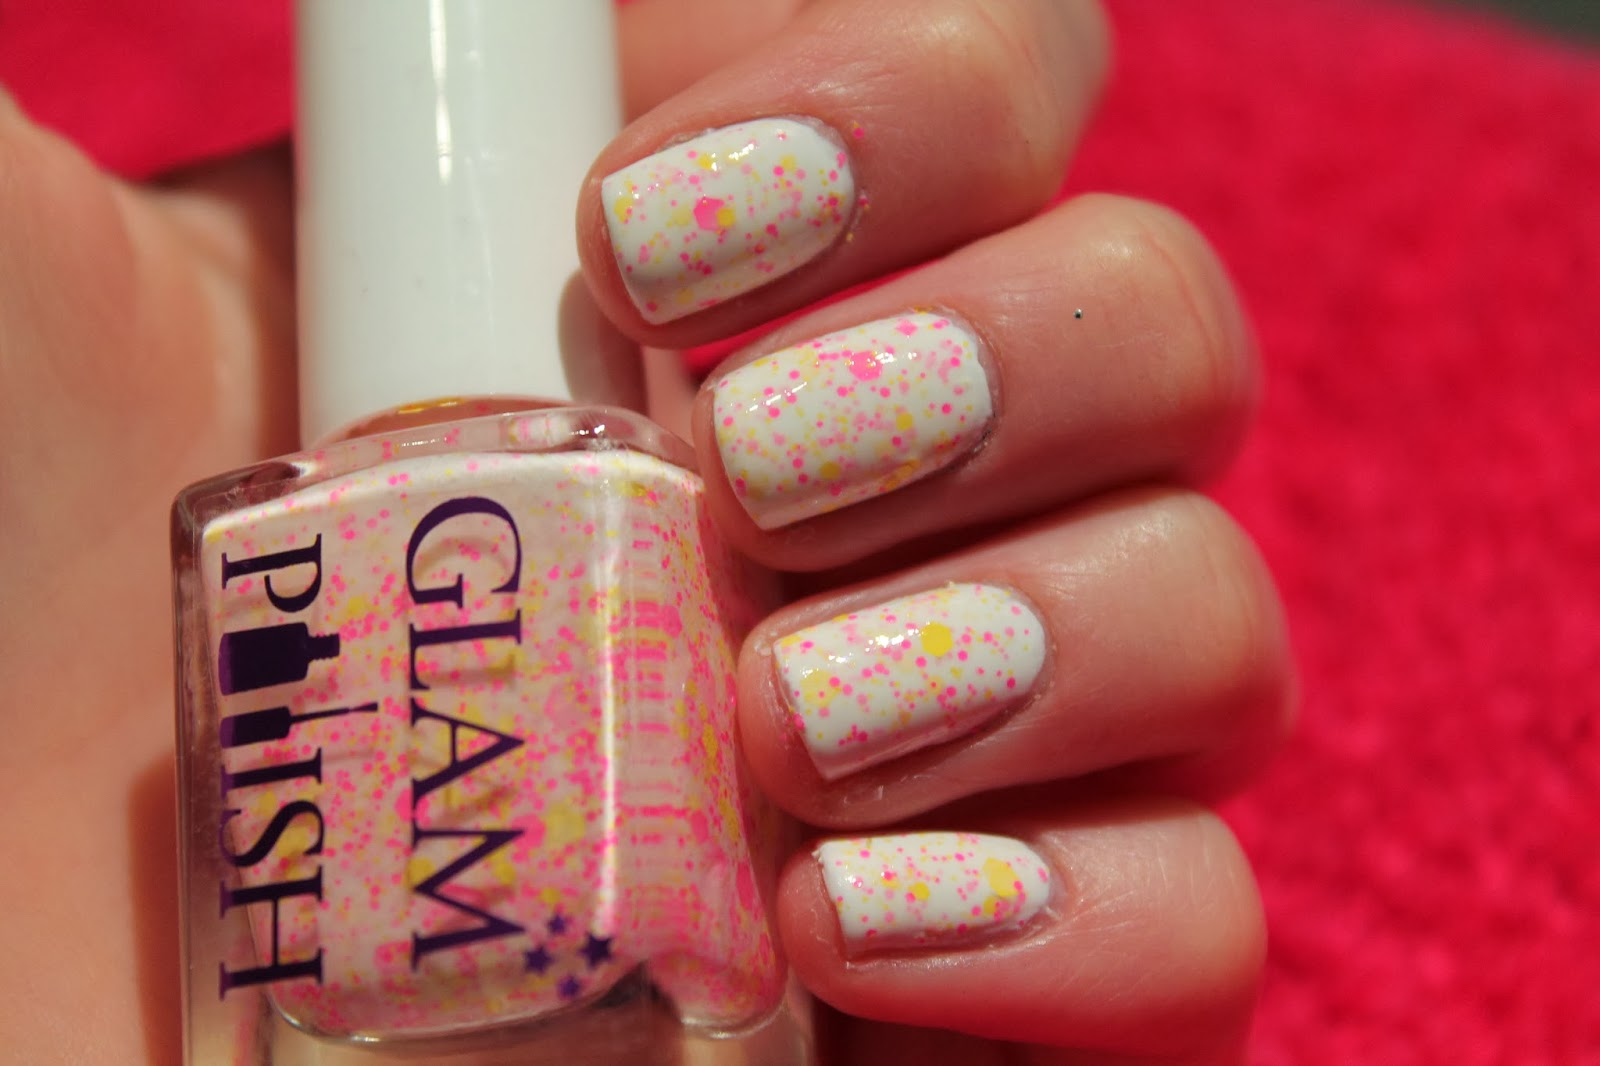 Glam Polish - So Fluffy I Wanna Die, Indie Nail Polish Swatch